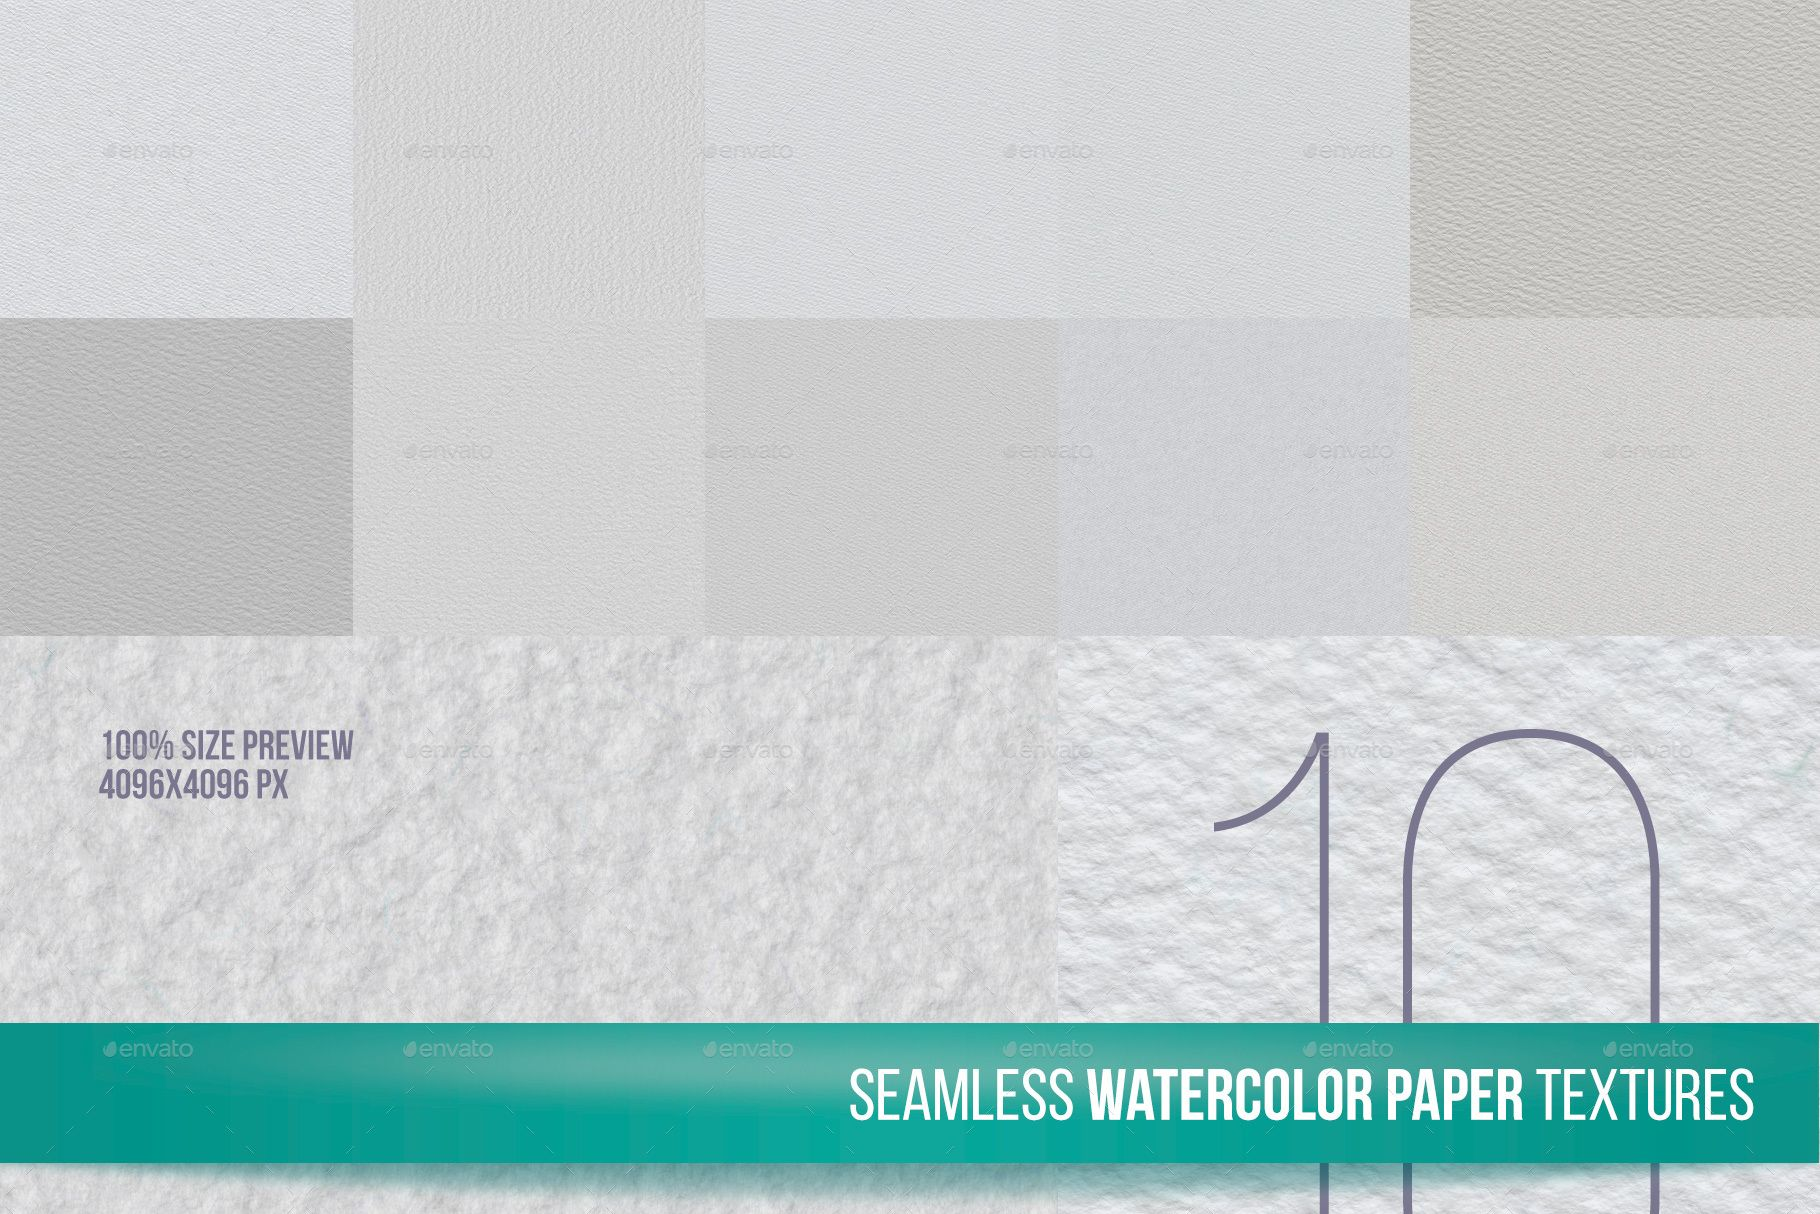 10 Seamless Watercolor Paper Texture Watercolor Paper Texture